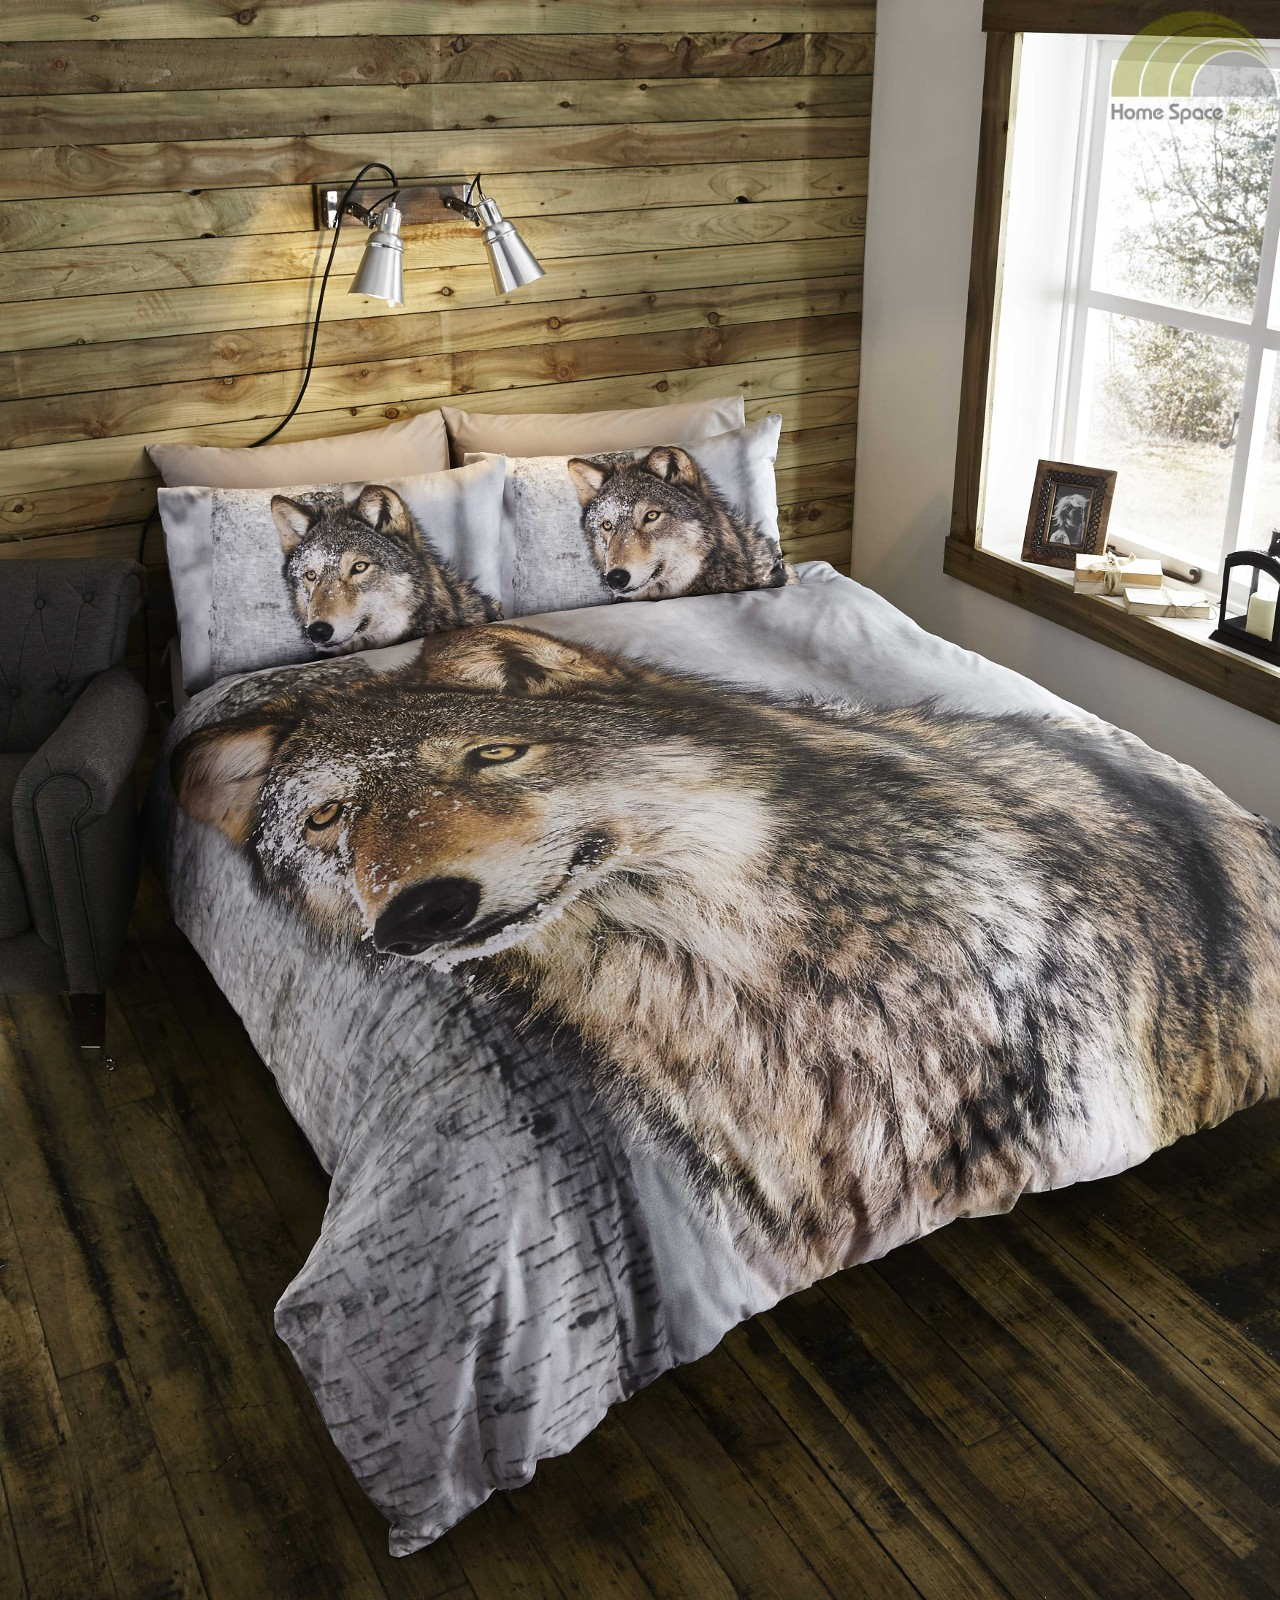 brown wolf duvet cover pillowcase s bedding bed set animal photo print ebay. Black Bedroom Furniture Sets. Home Design Ideas